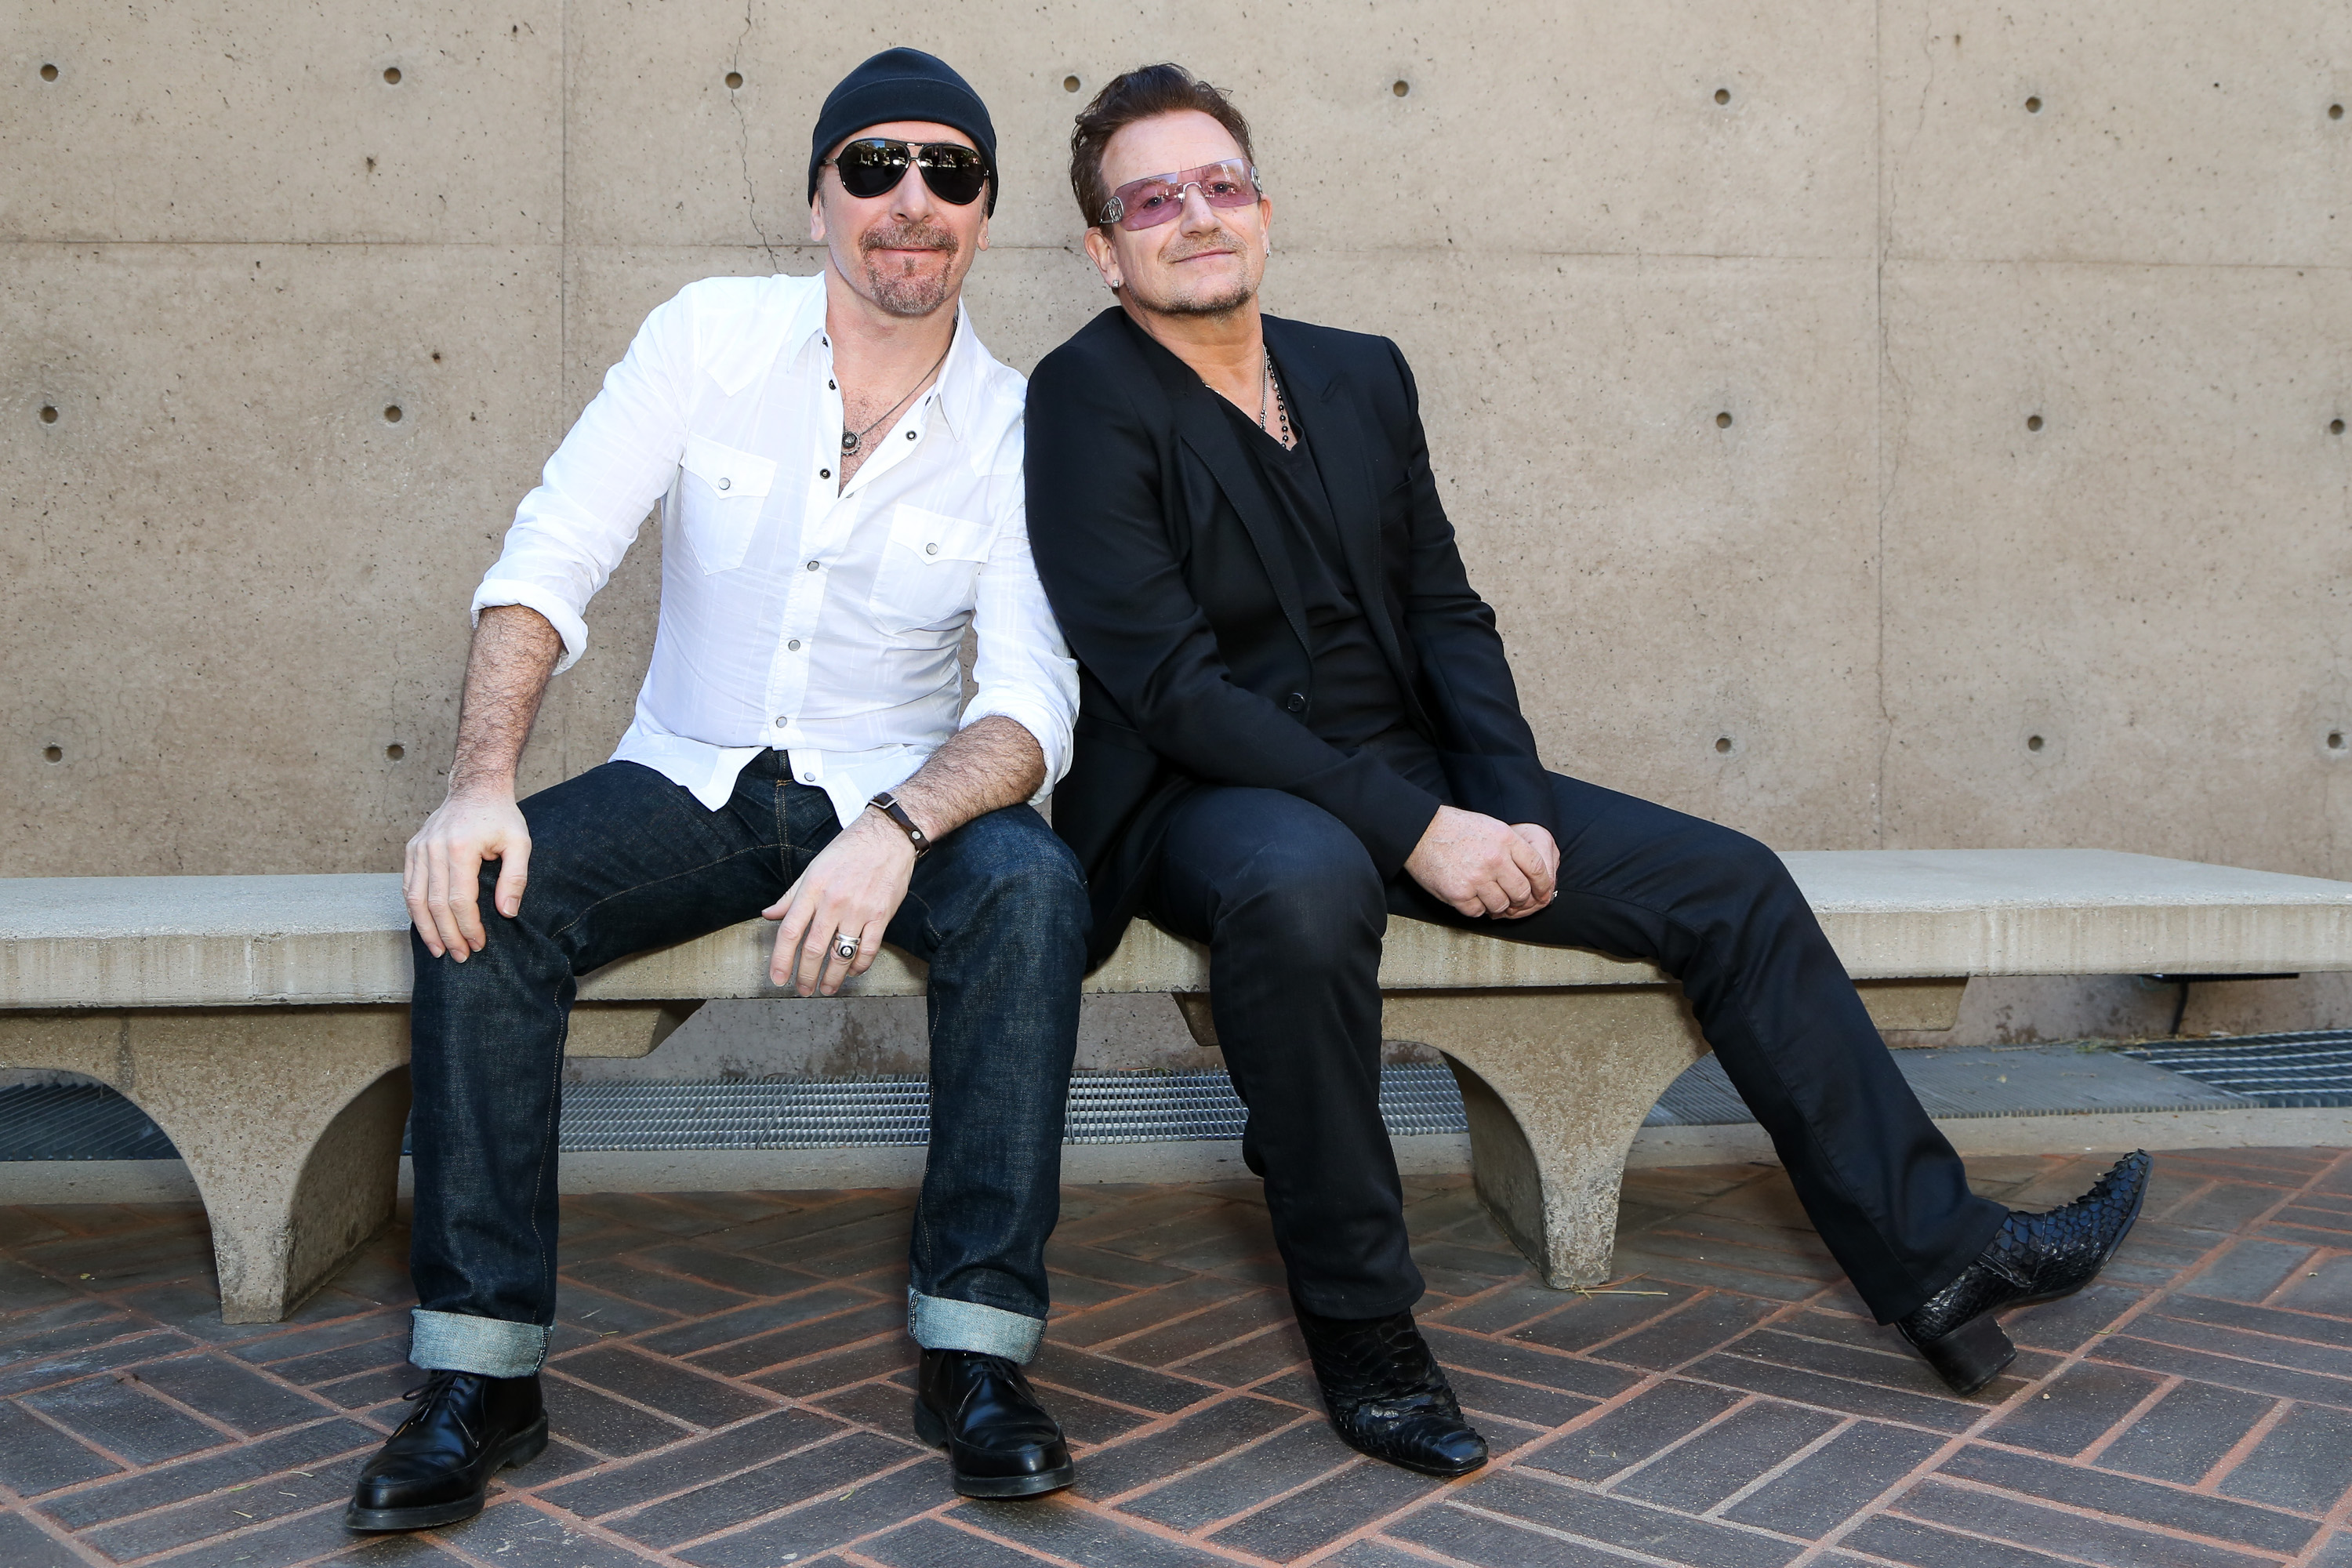 Inside U2's 'Innocence' Spectacle: A Backstage Q&A With Bono and Edge